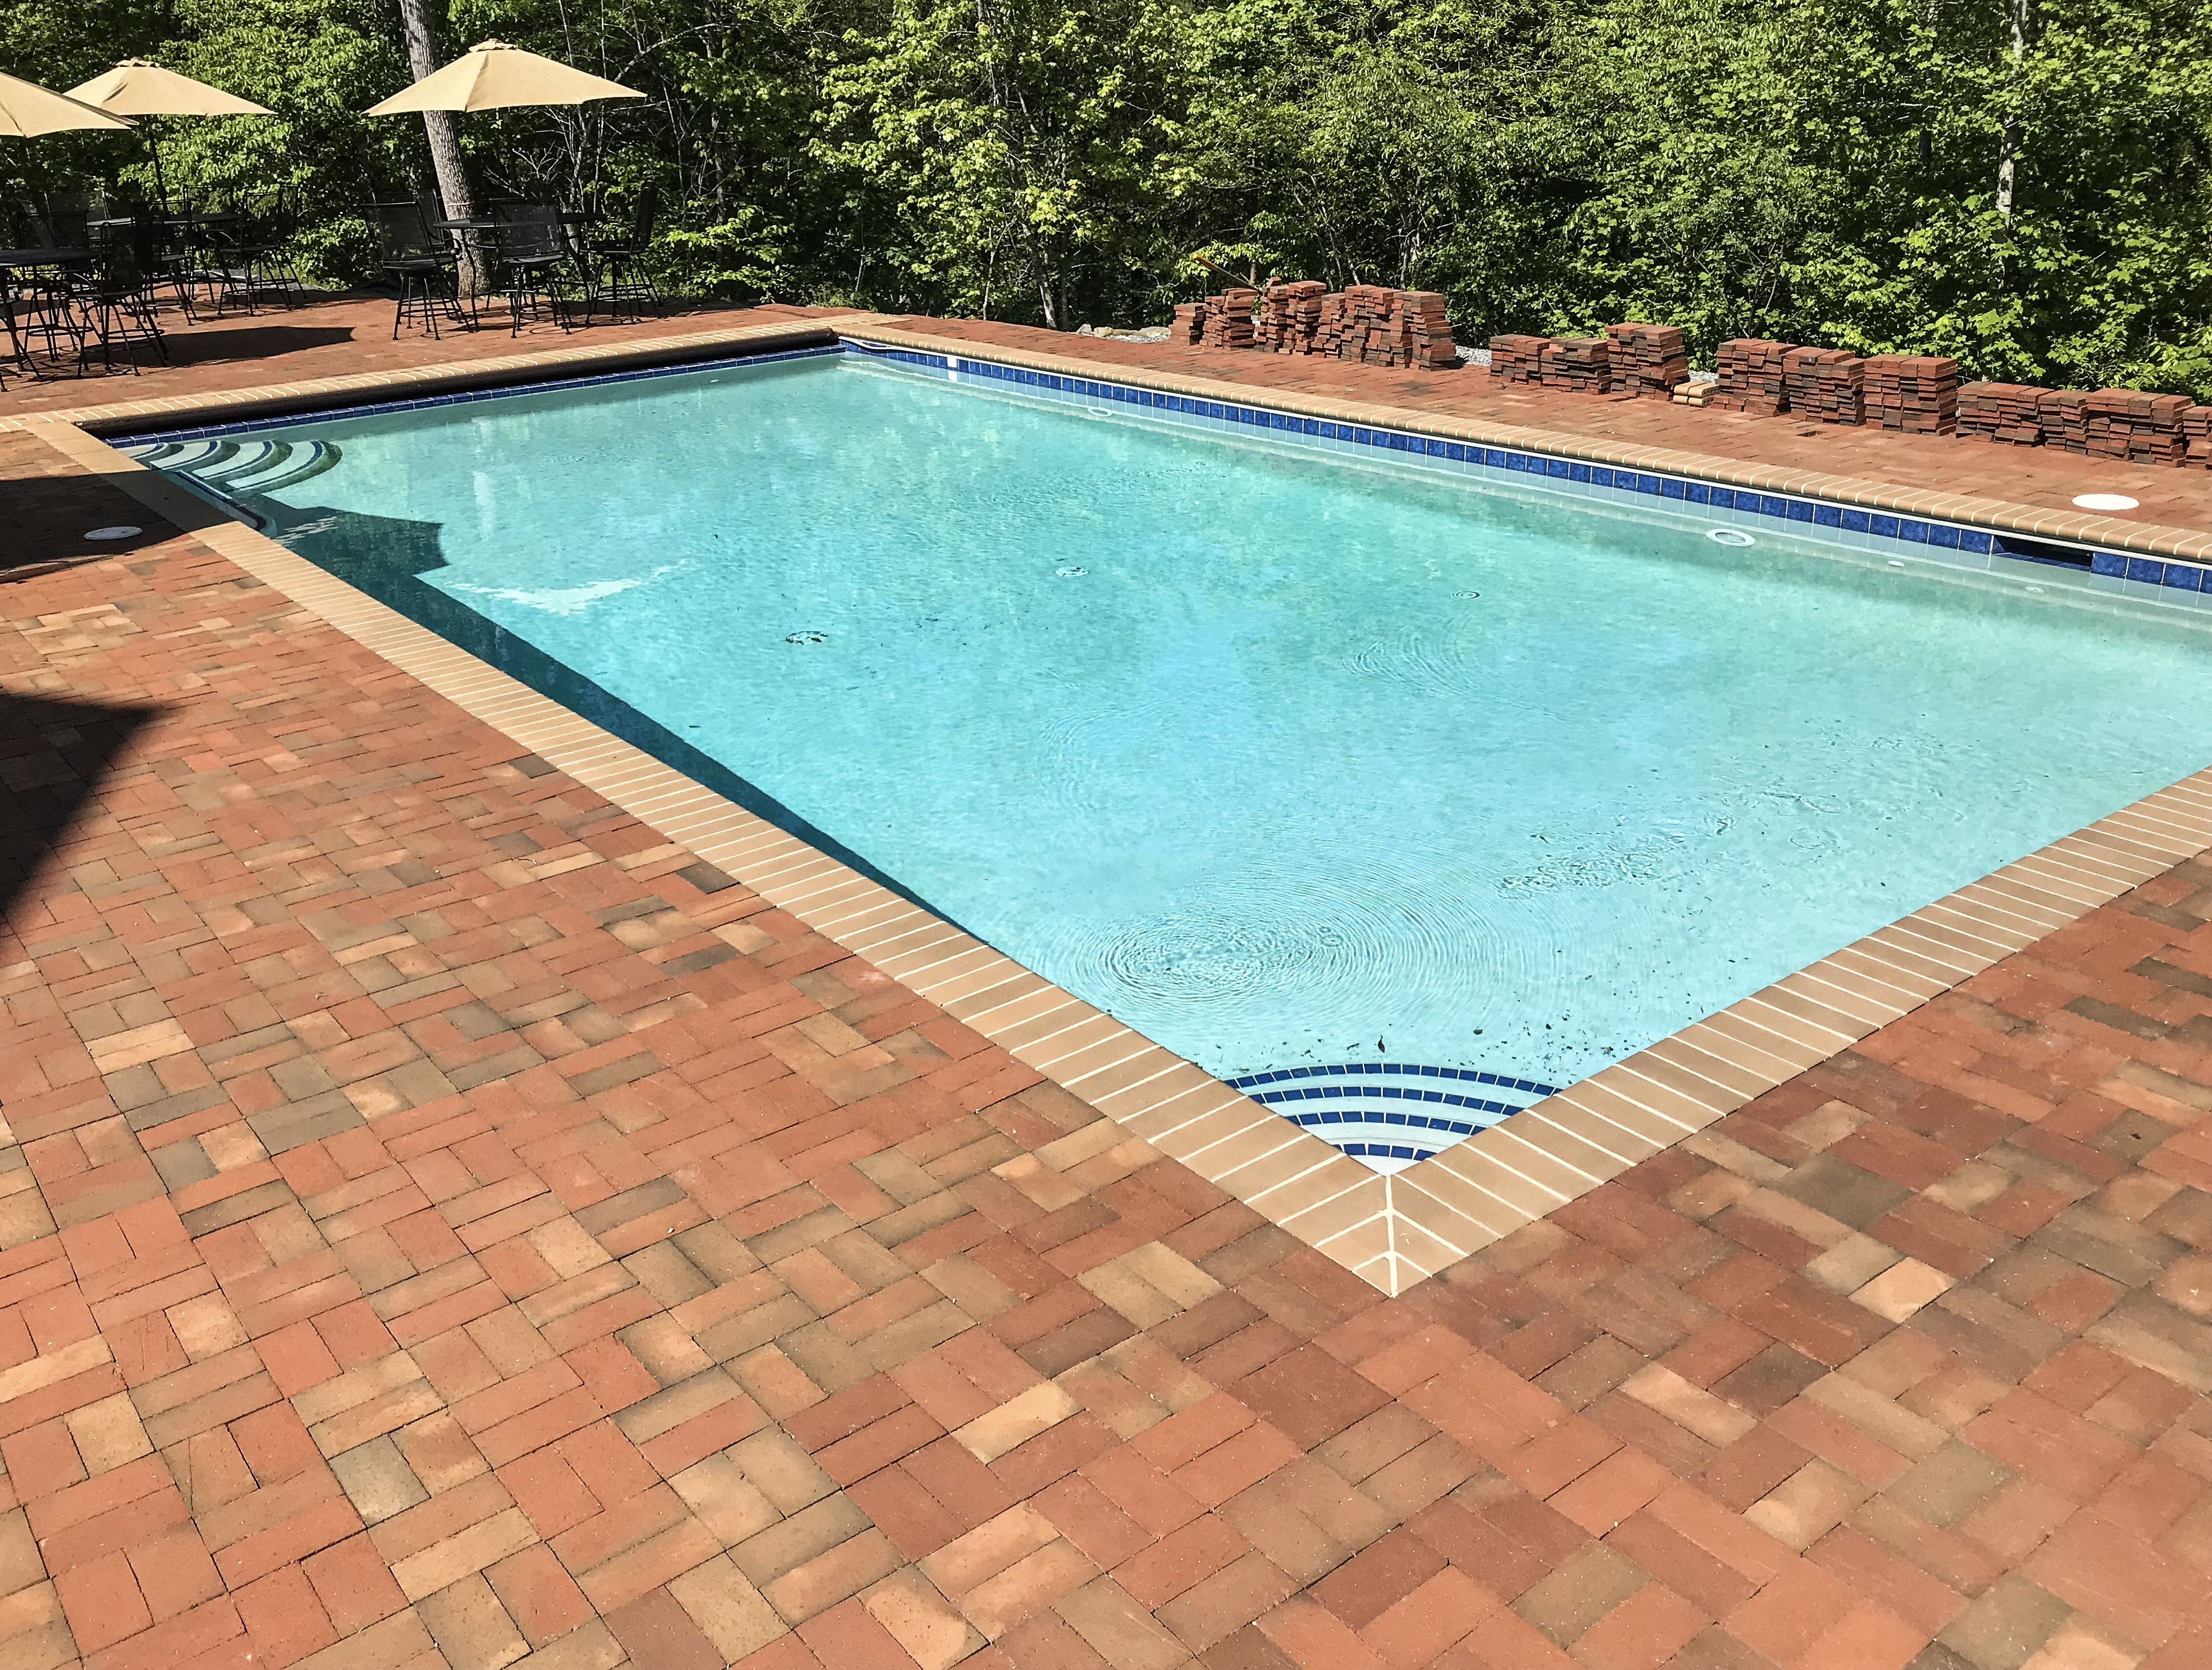 Beautifully Accent Your Blue Pool With A Paver Paver Deck Made With Pathway Full Range Thin Pavers Brick Pavers Garden Pavers Small Backyard Pools